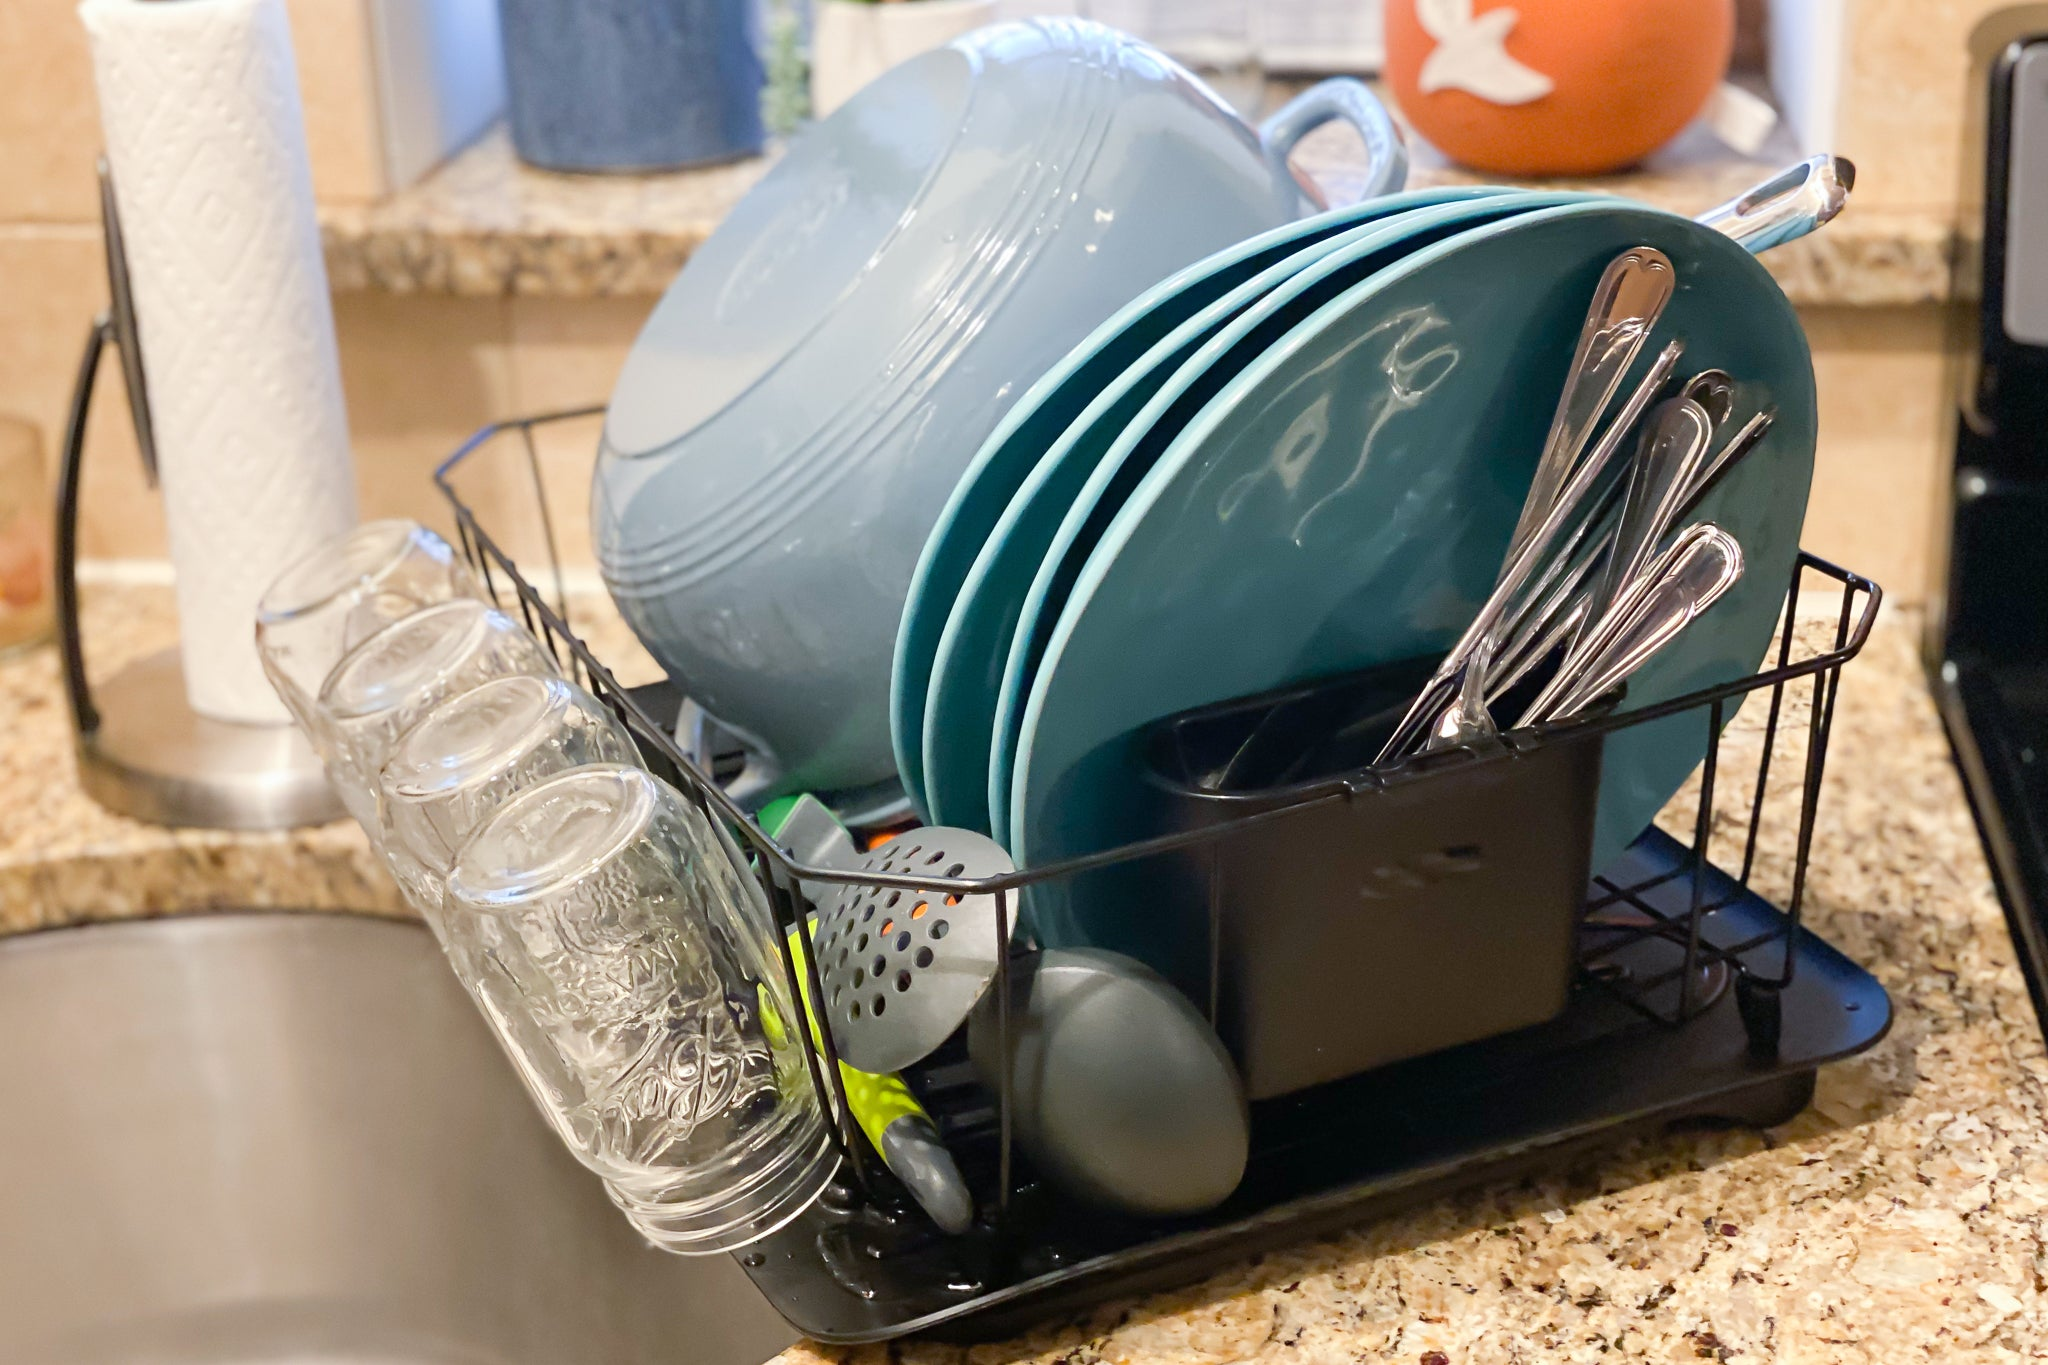 the 5 best dish racks 2021 reviews by